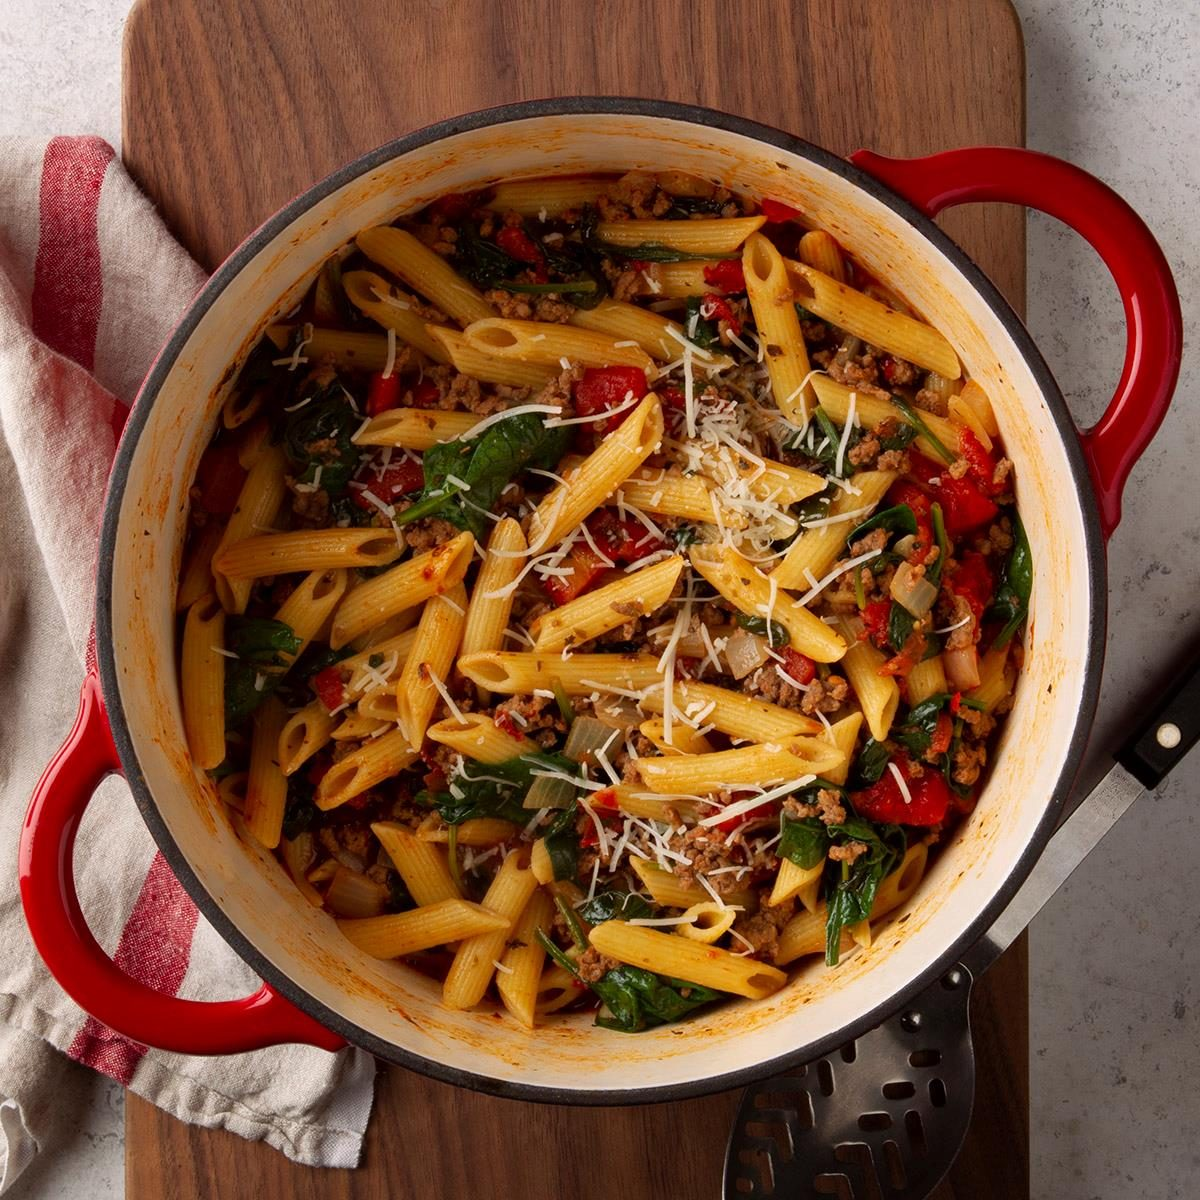 Dutch Oven Pasta Bake Recipe How To Make It Taste Of Home